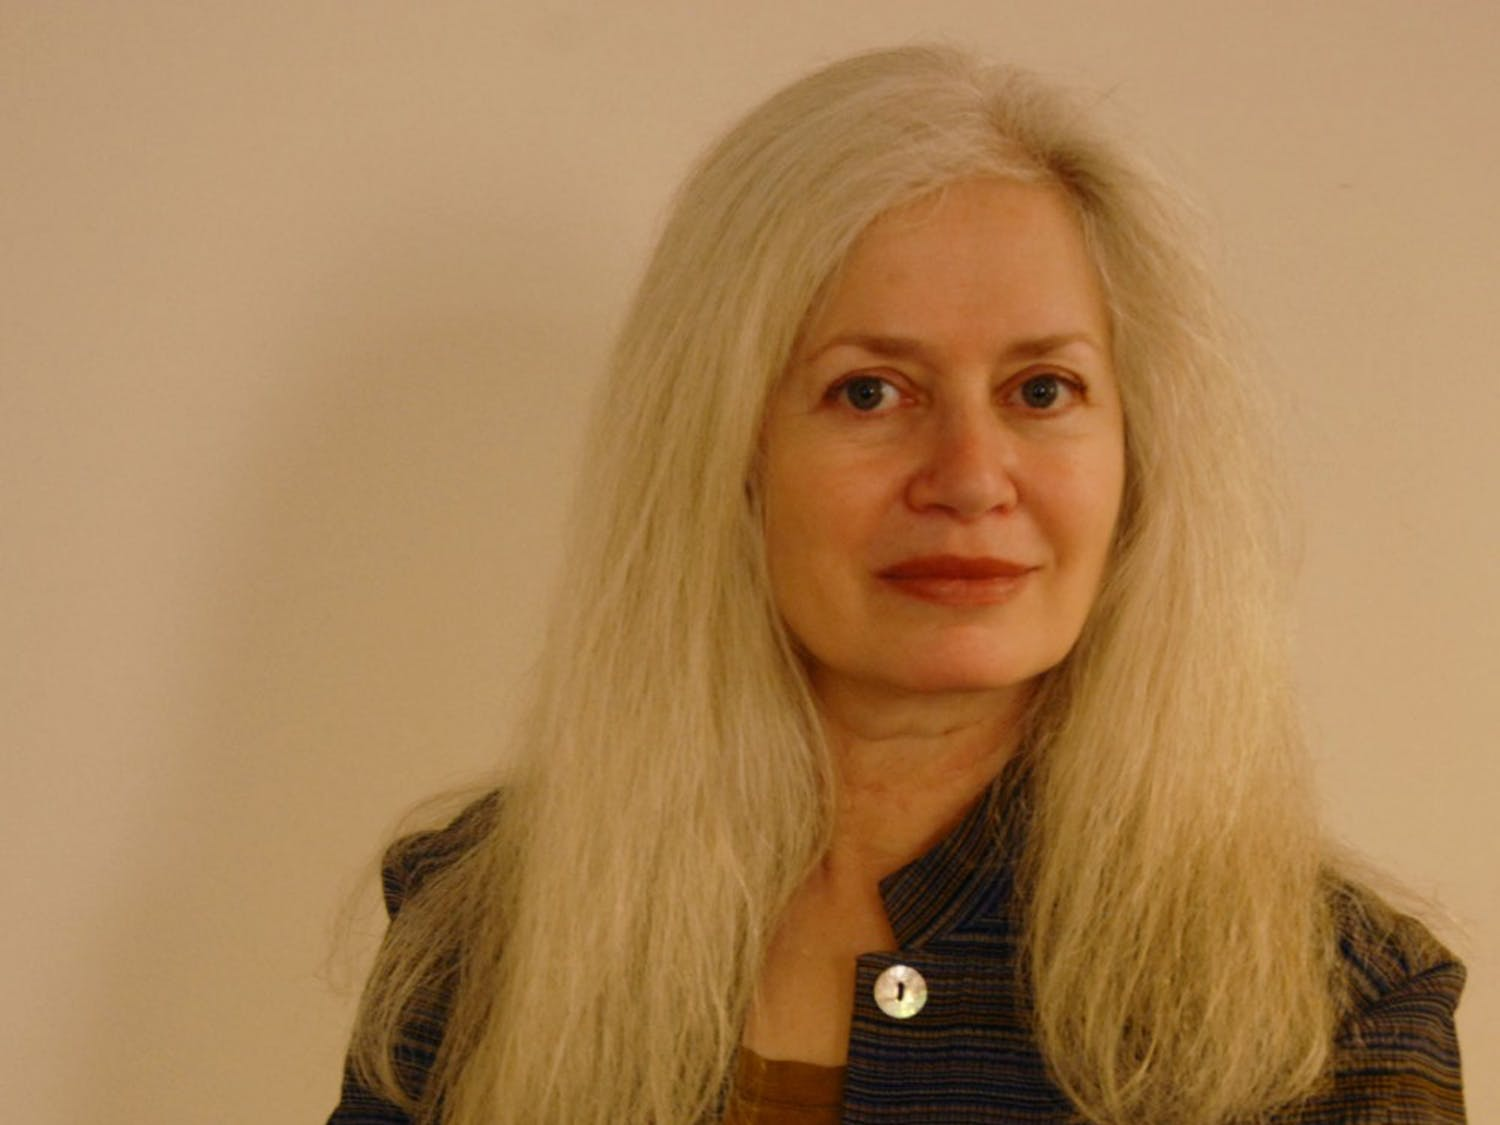 Amy Hempel, short story writer, journalist and professor, speaks at Donovan Lounge in Greenlaw on Monday afternoon inspiring her listeners with beautiful fictional prose.